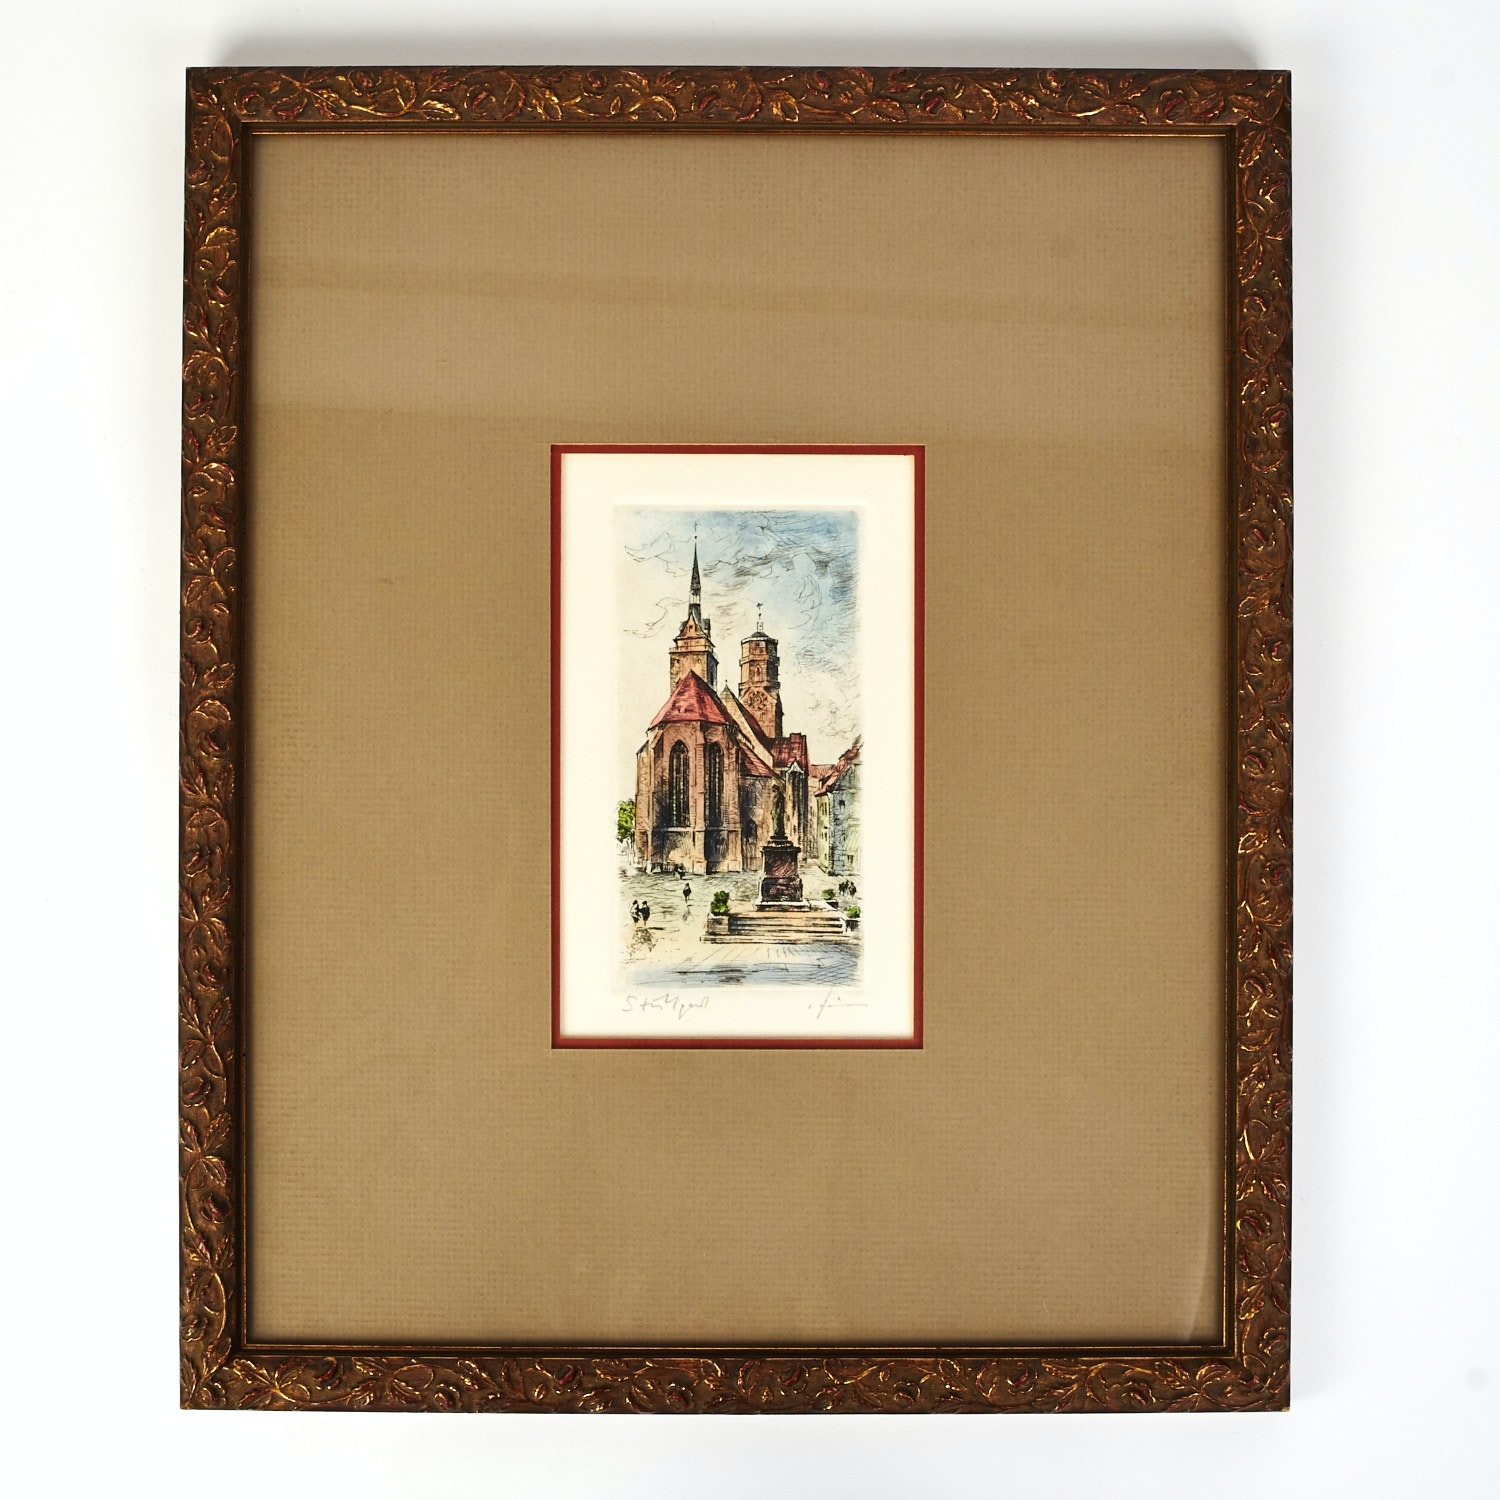 Artist Signed Hand Colored Etching Of A Church